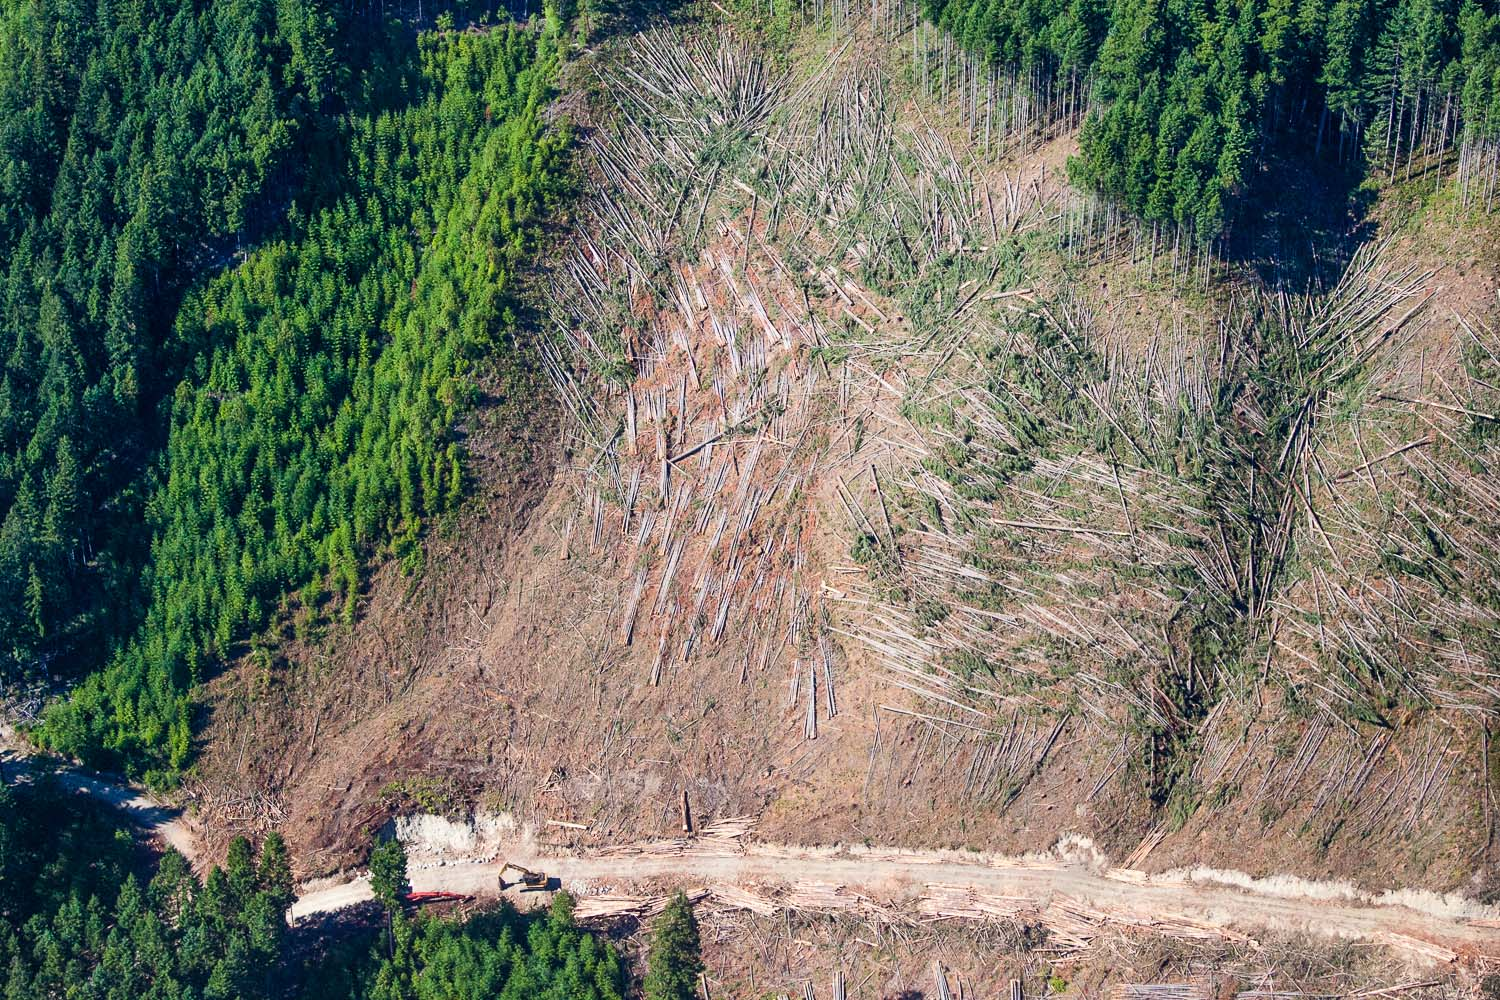 A clear example of what BC's endangered old-growth forests are being converted to: tree plantations that are typically cut again every 30-80 years and which lack the important ecological diversity of their predecessors. Lake Cowichan area.